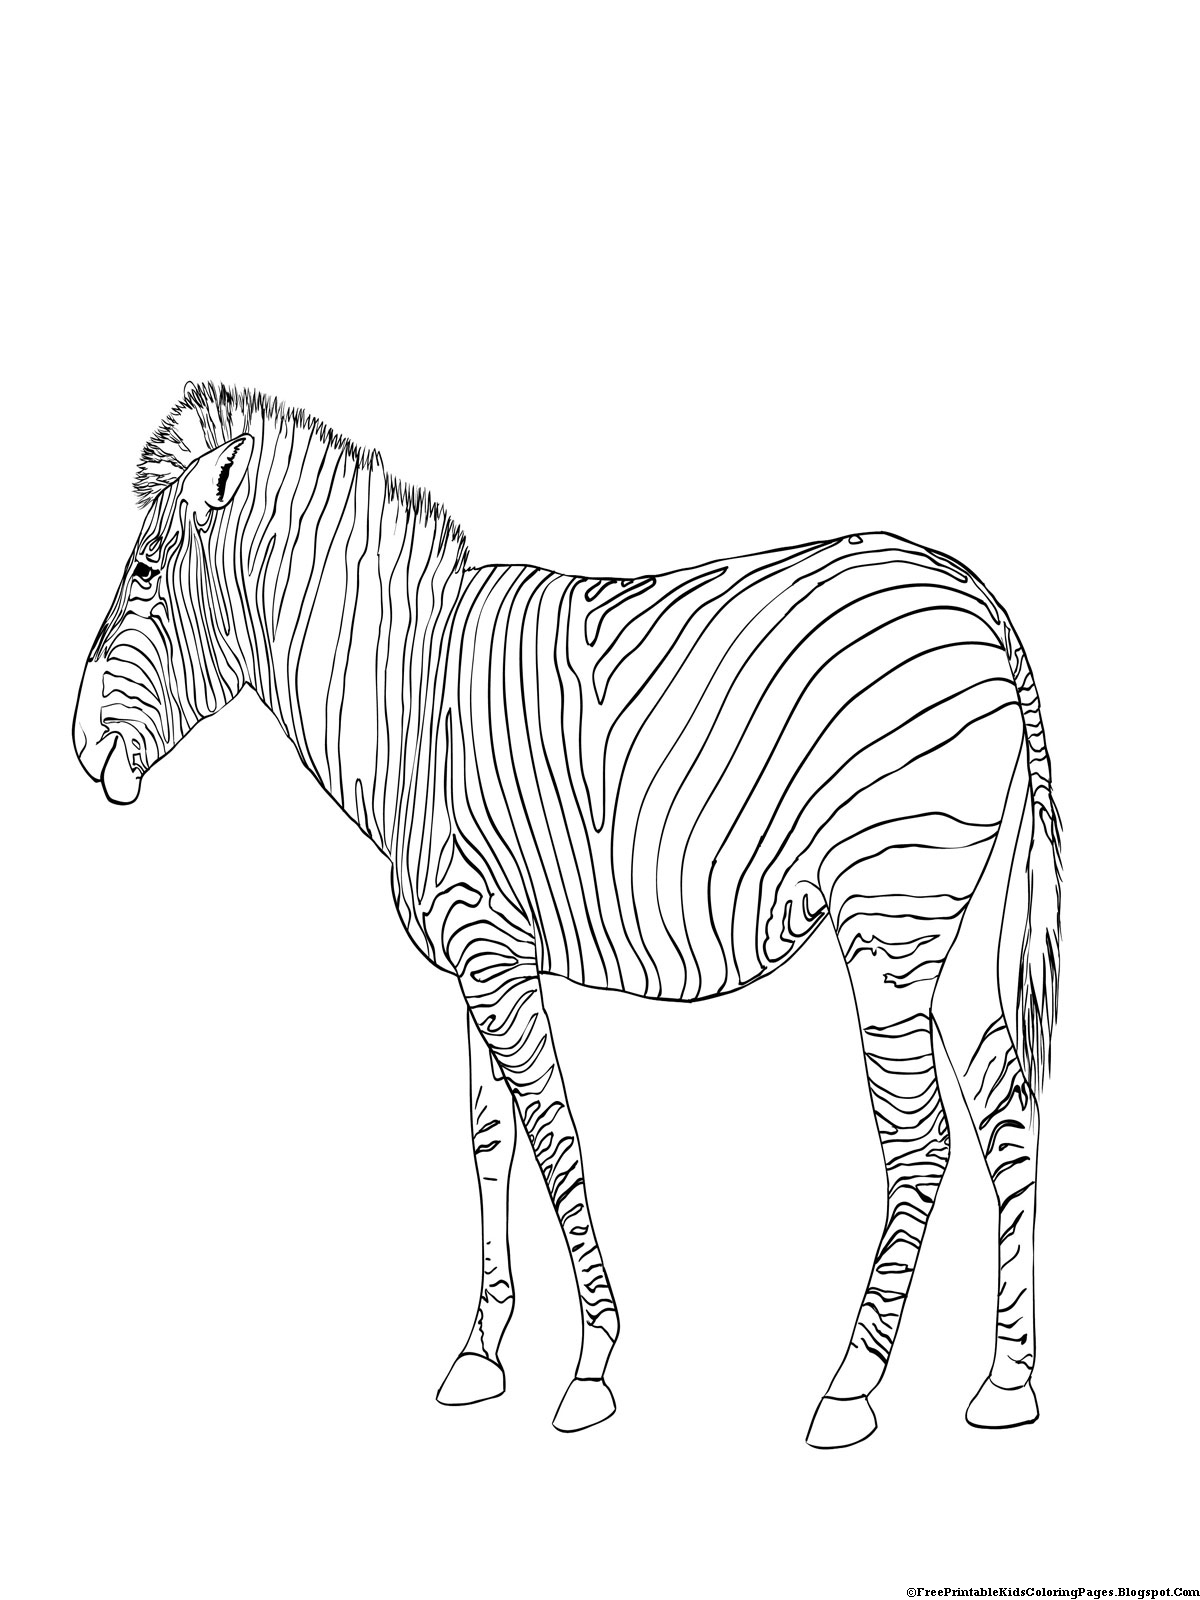 Go Back  gt  Images For  gt  Zebra Head Coloring PagesZebra Head Coloring Pages